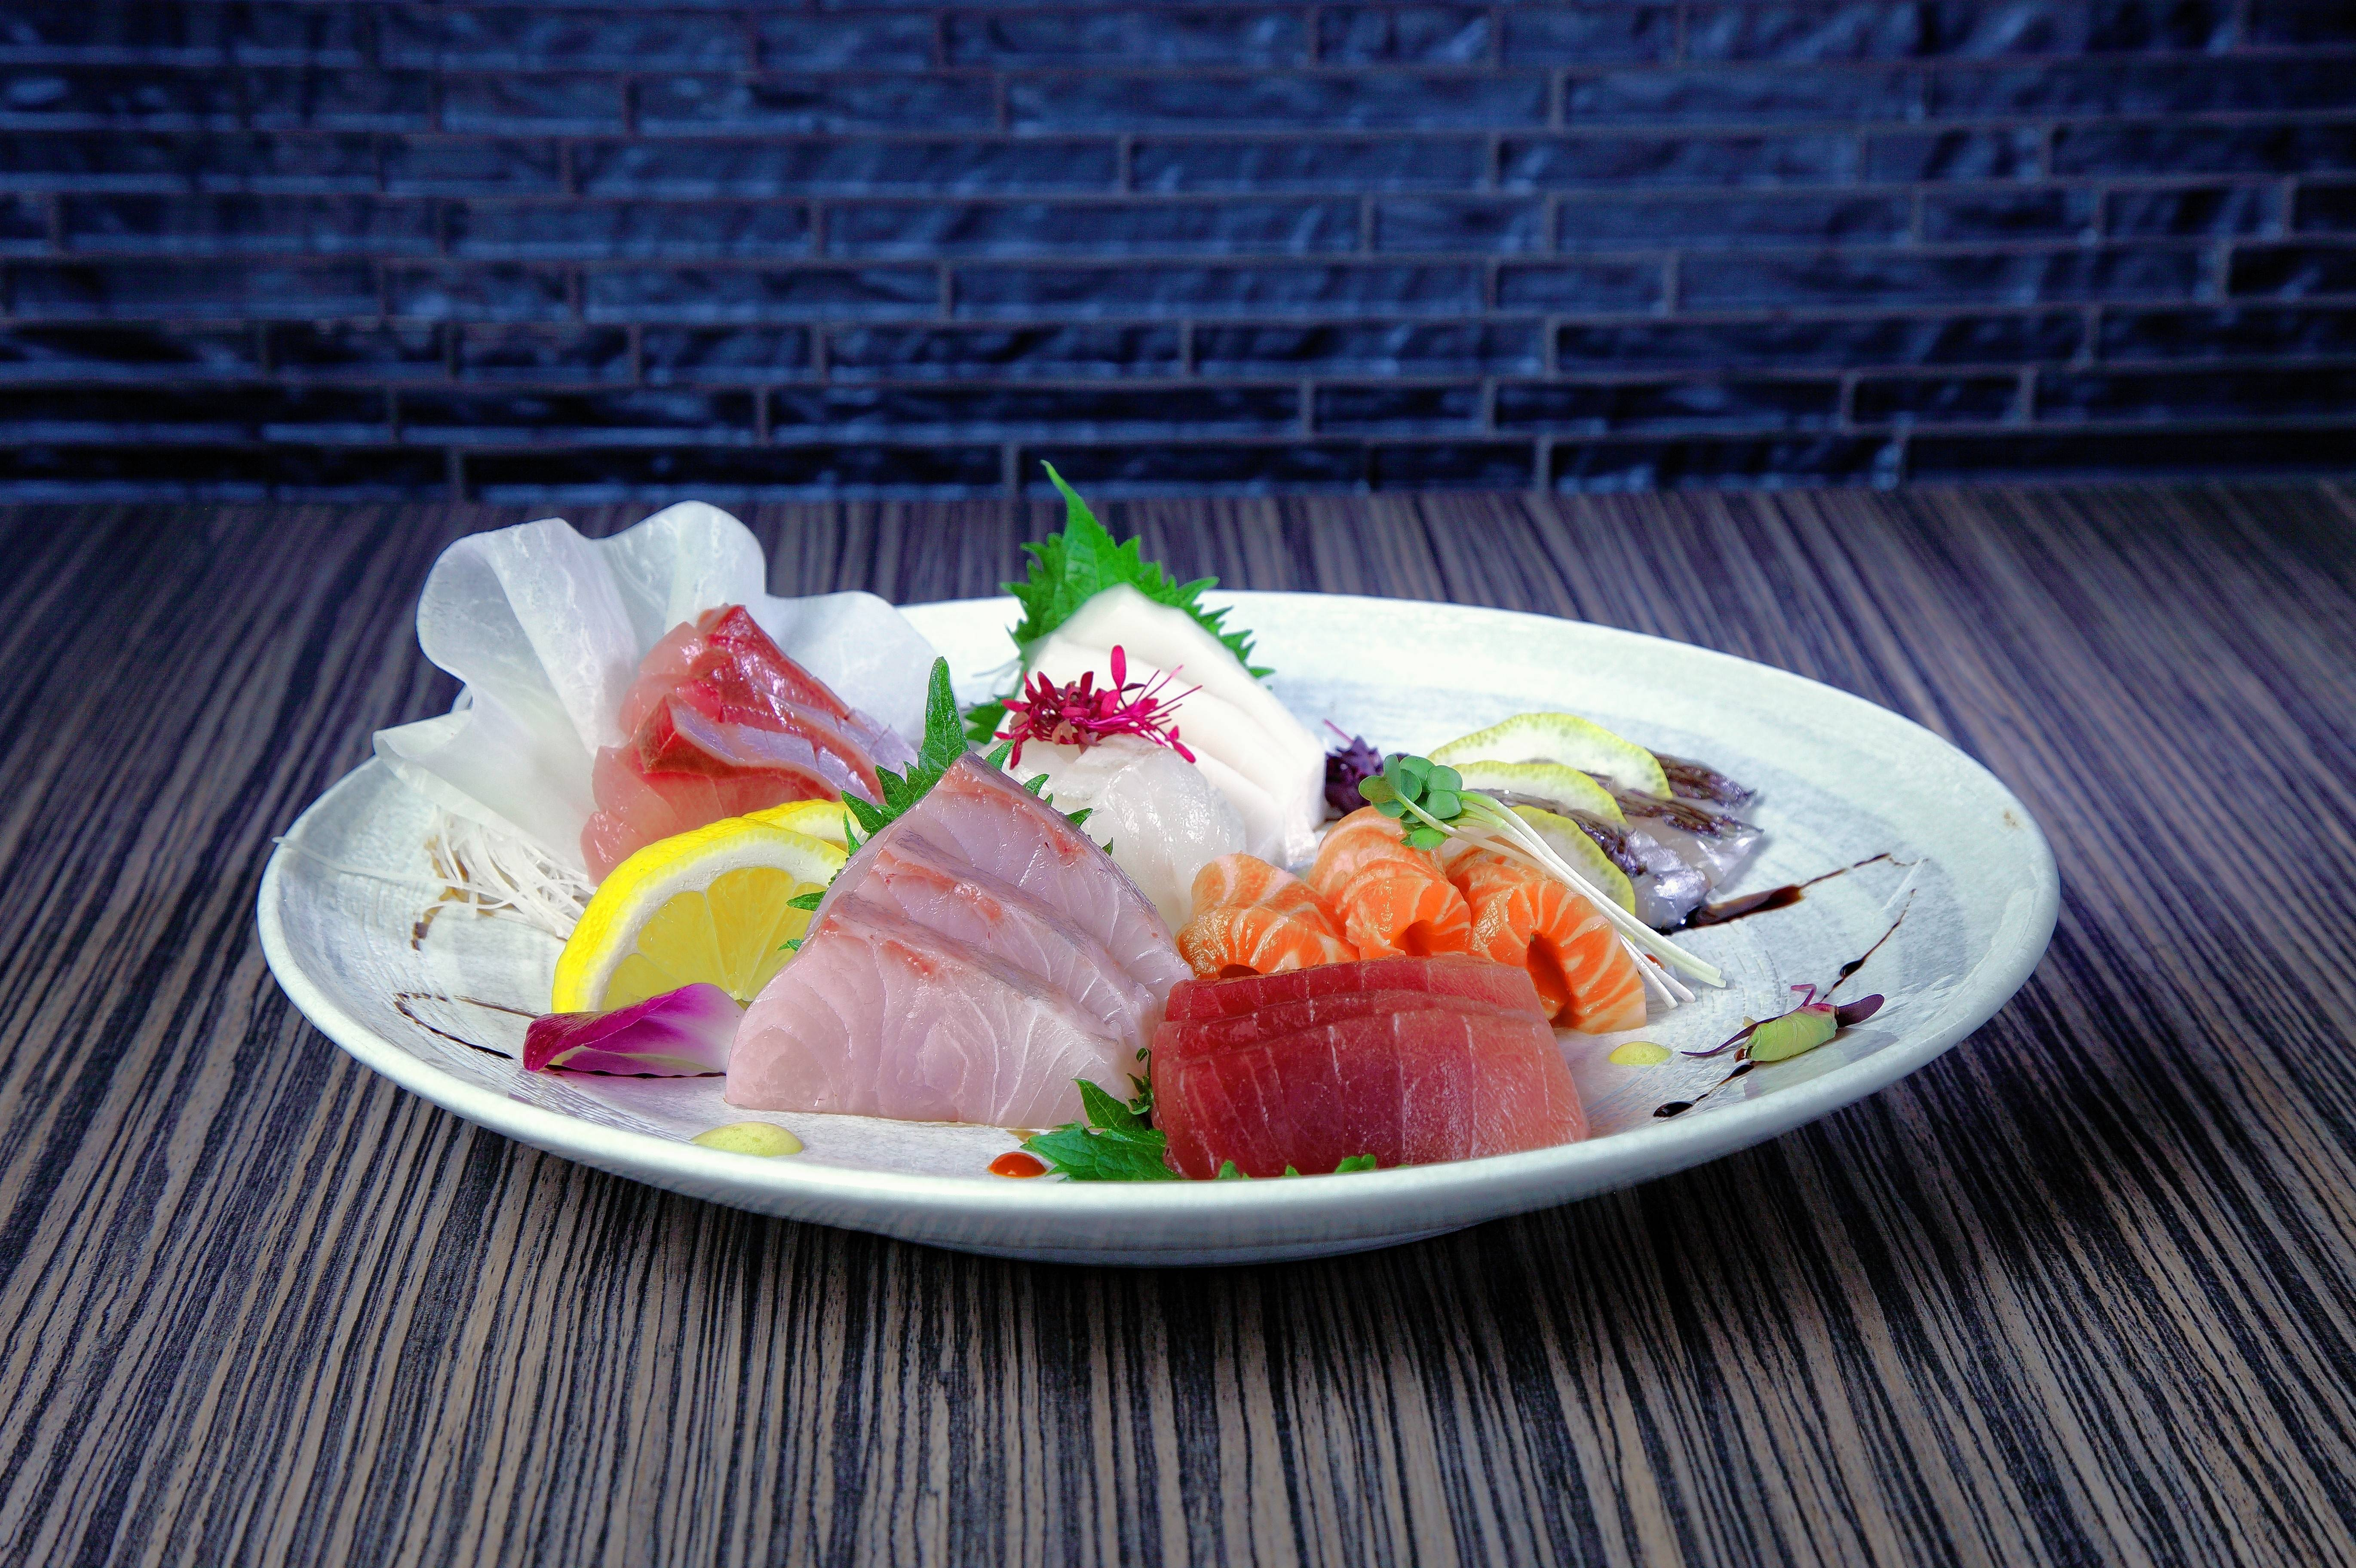 You can always have the chefs at Shakou select sushi, nigiri and sashimi for you in various quantities.